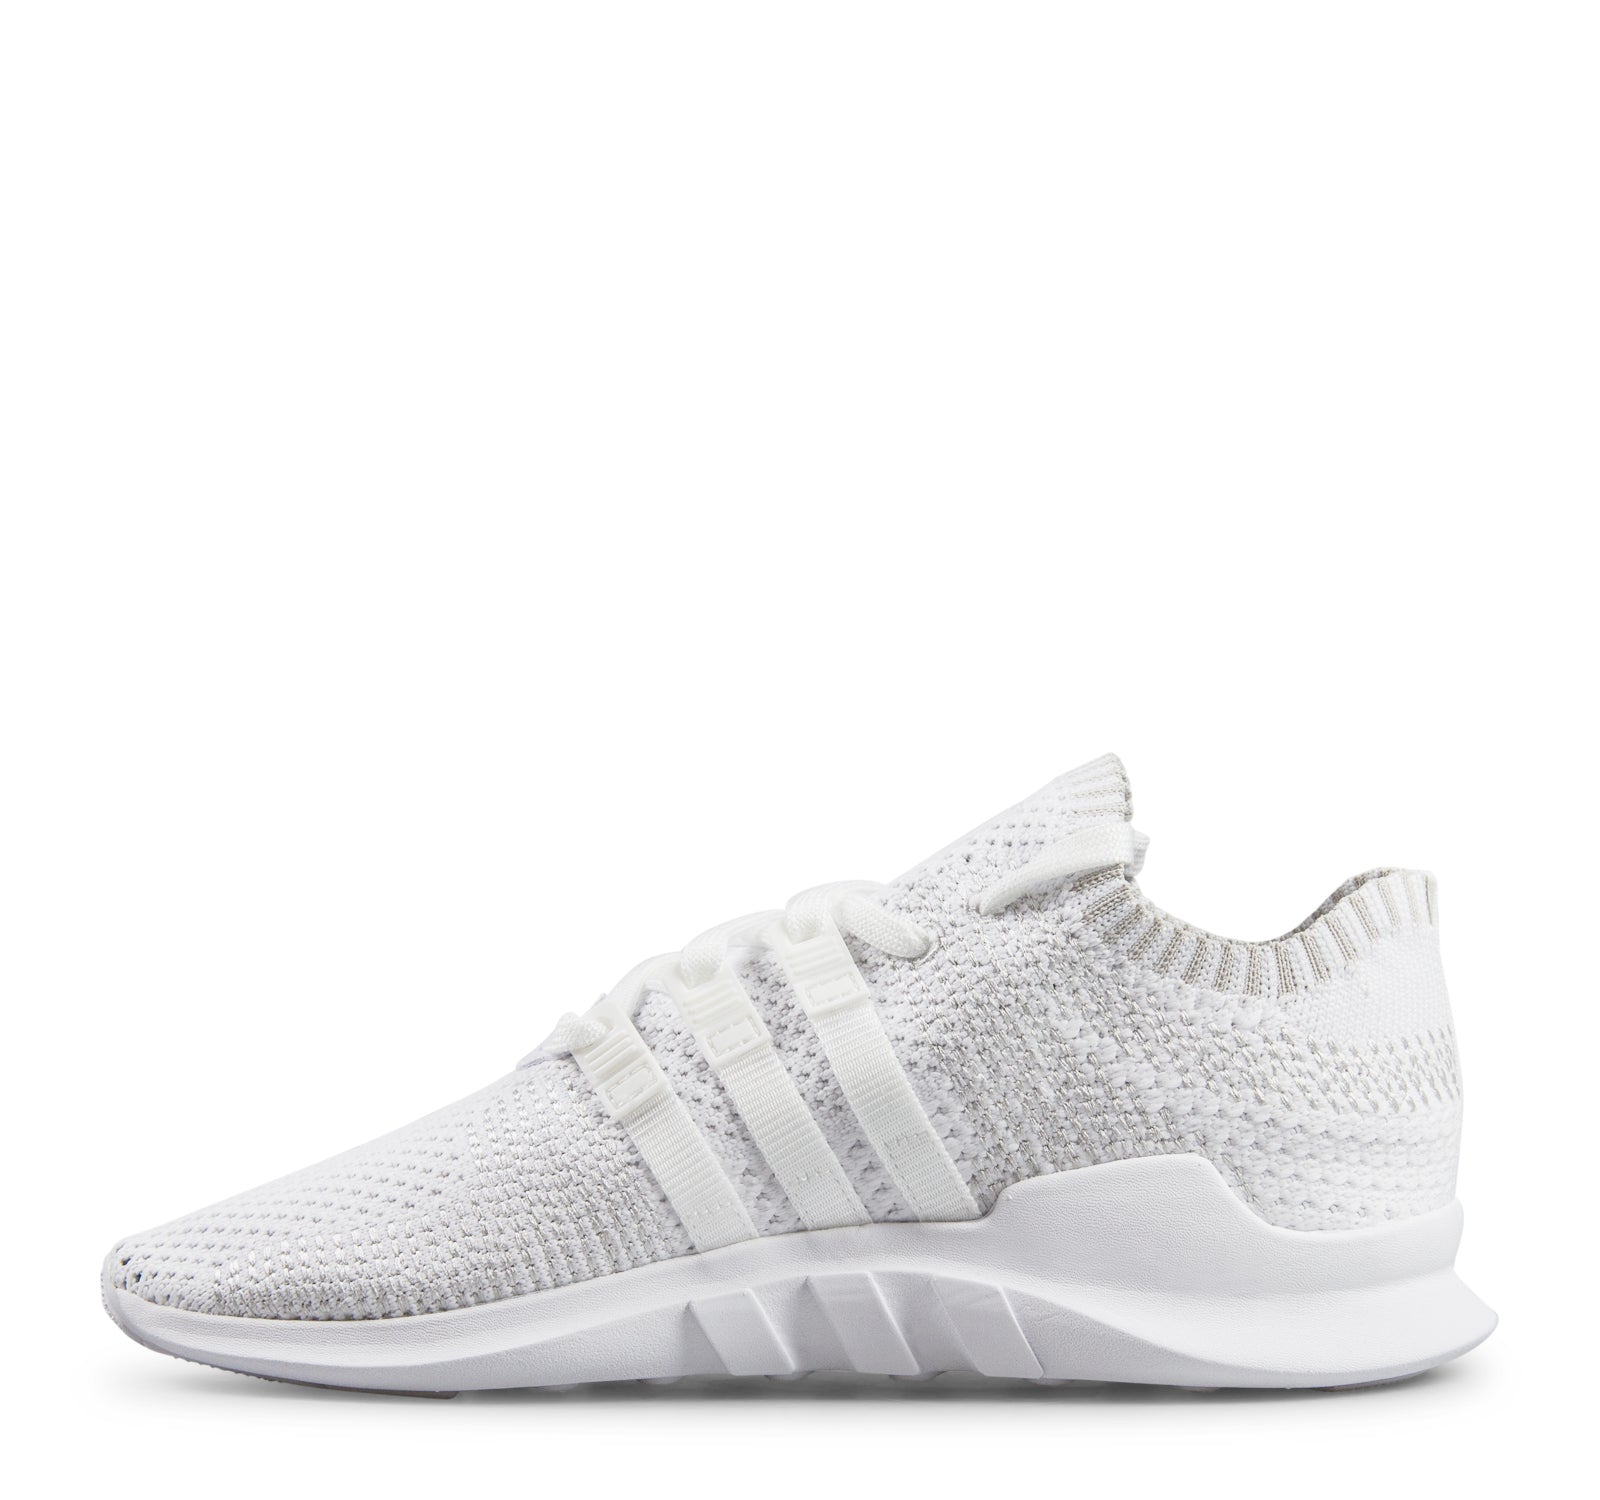 newest eeb2a d512e ... Adidas EQT Support ADV PK BY9391 Men s Sneaker in White - Adidas - On  The EDGE ...